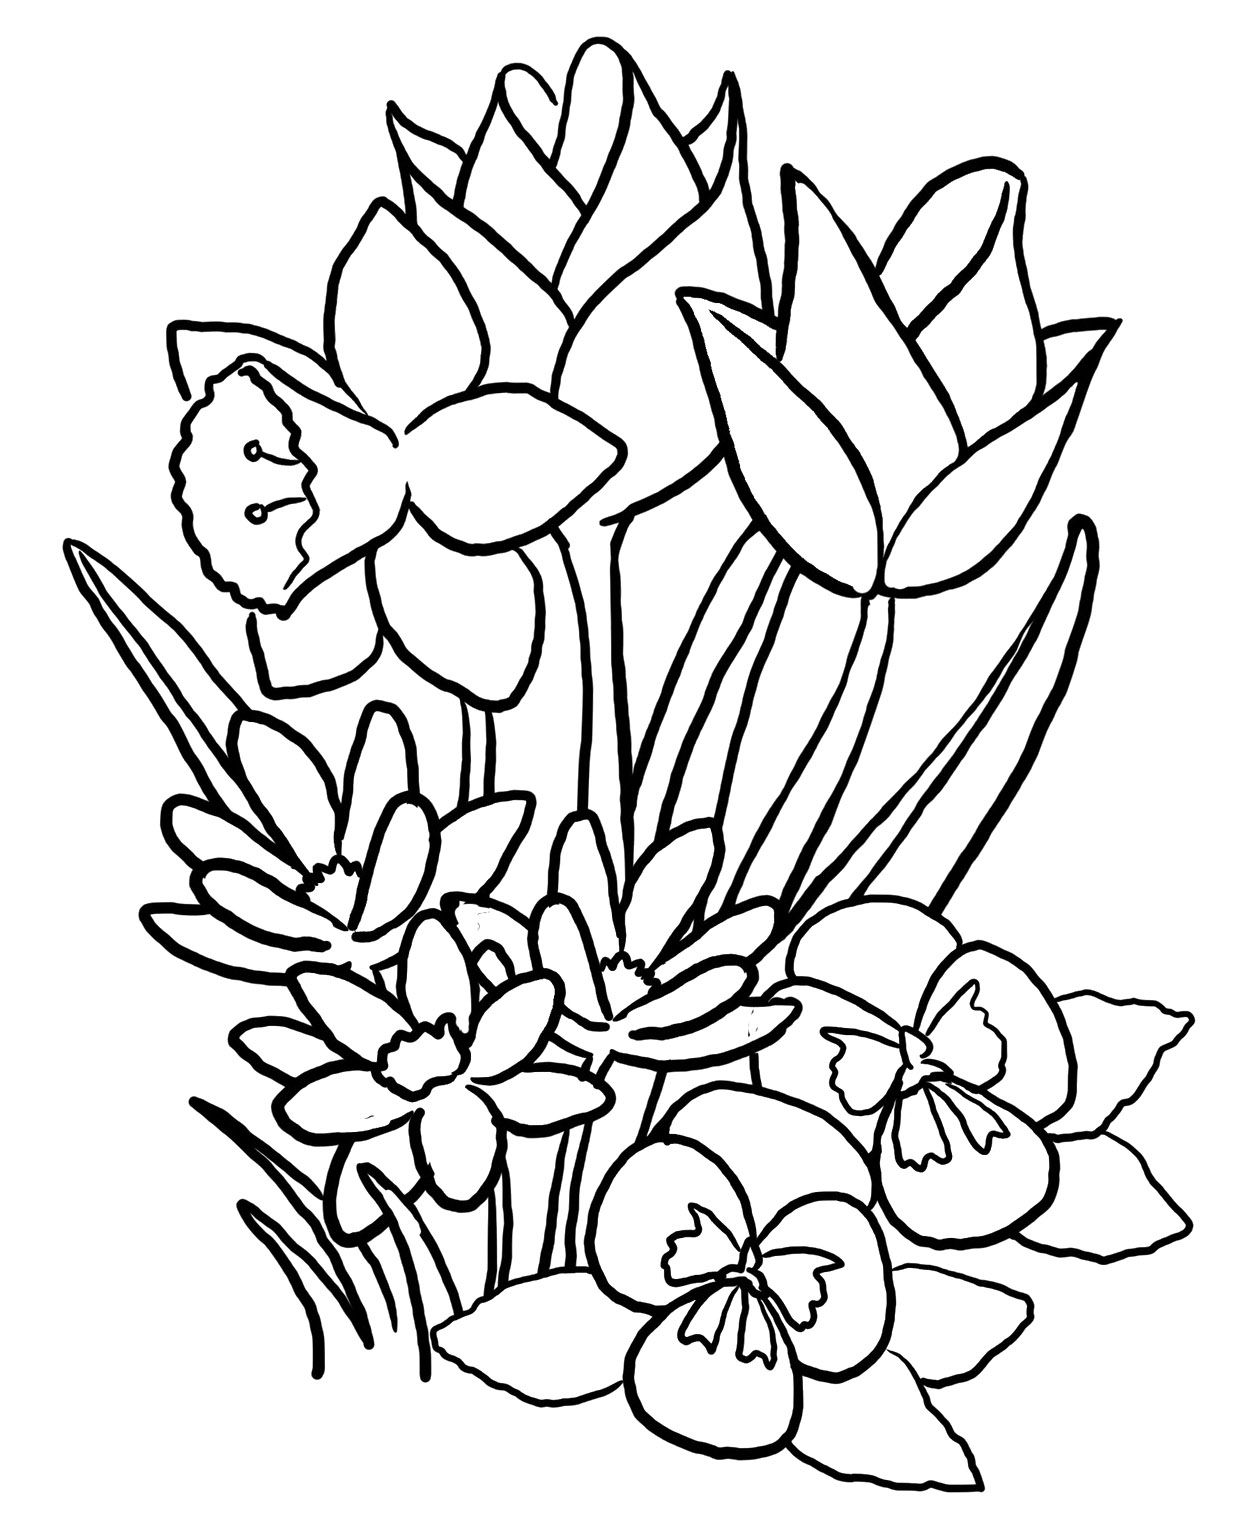 Printable coloring pages of spring - Spring Coloring Pages Printable Spring Coloring Pages Free Spring Coloring Pages Online Spring